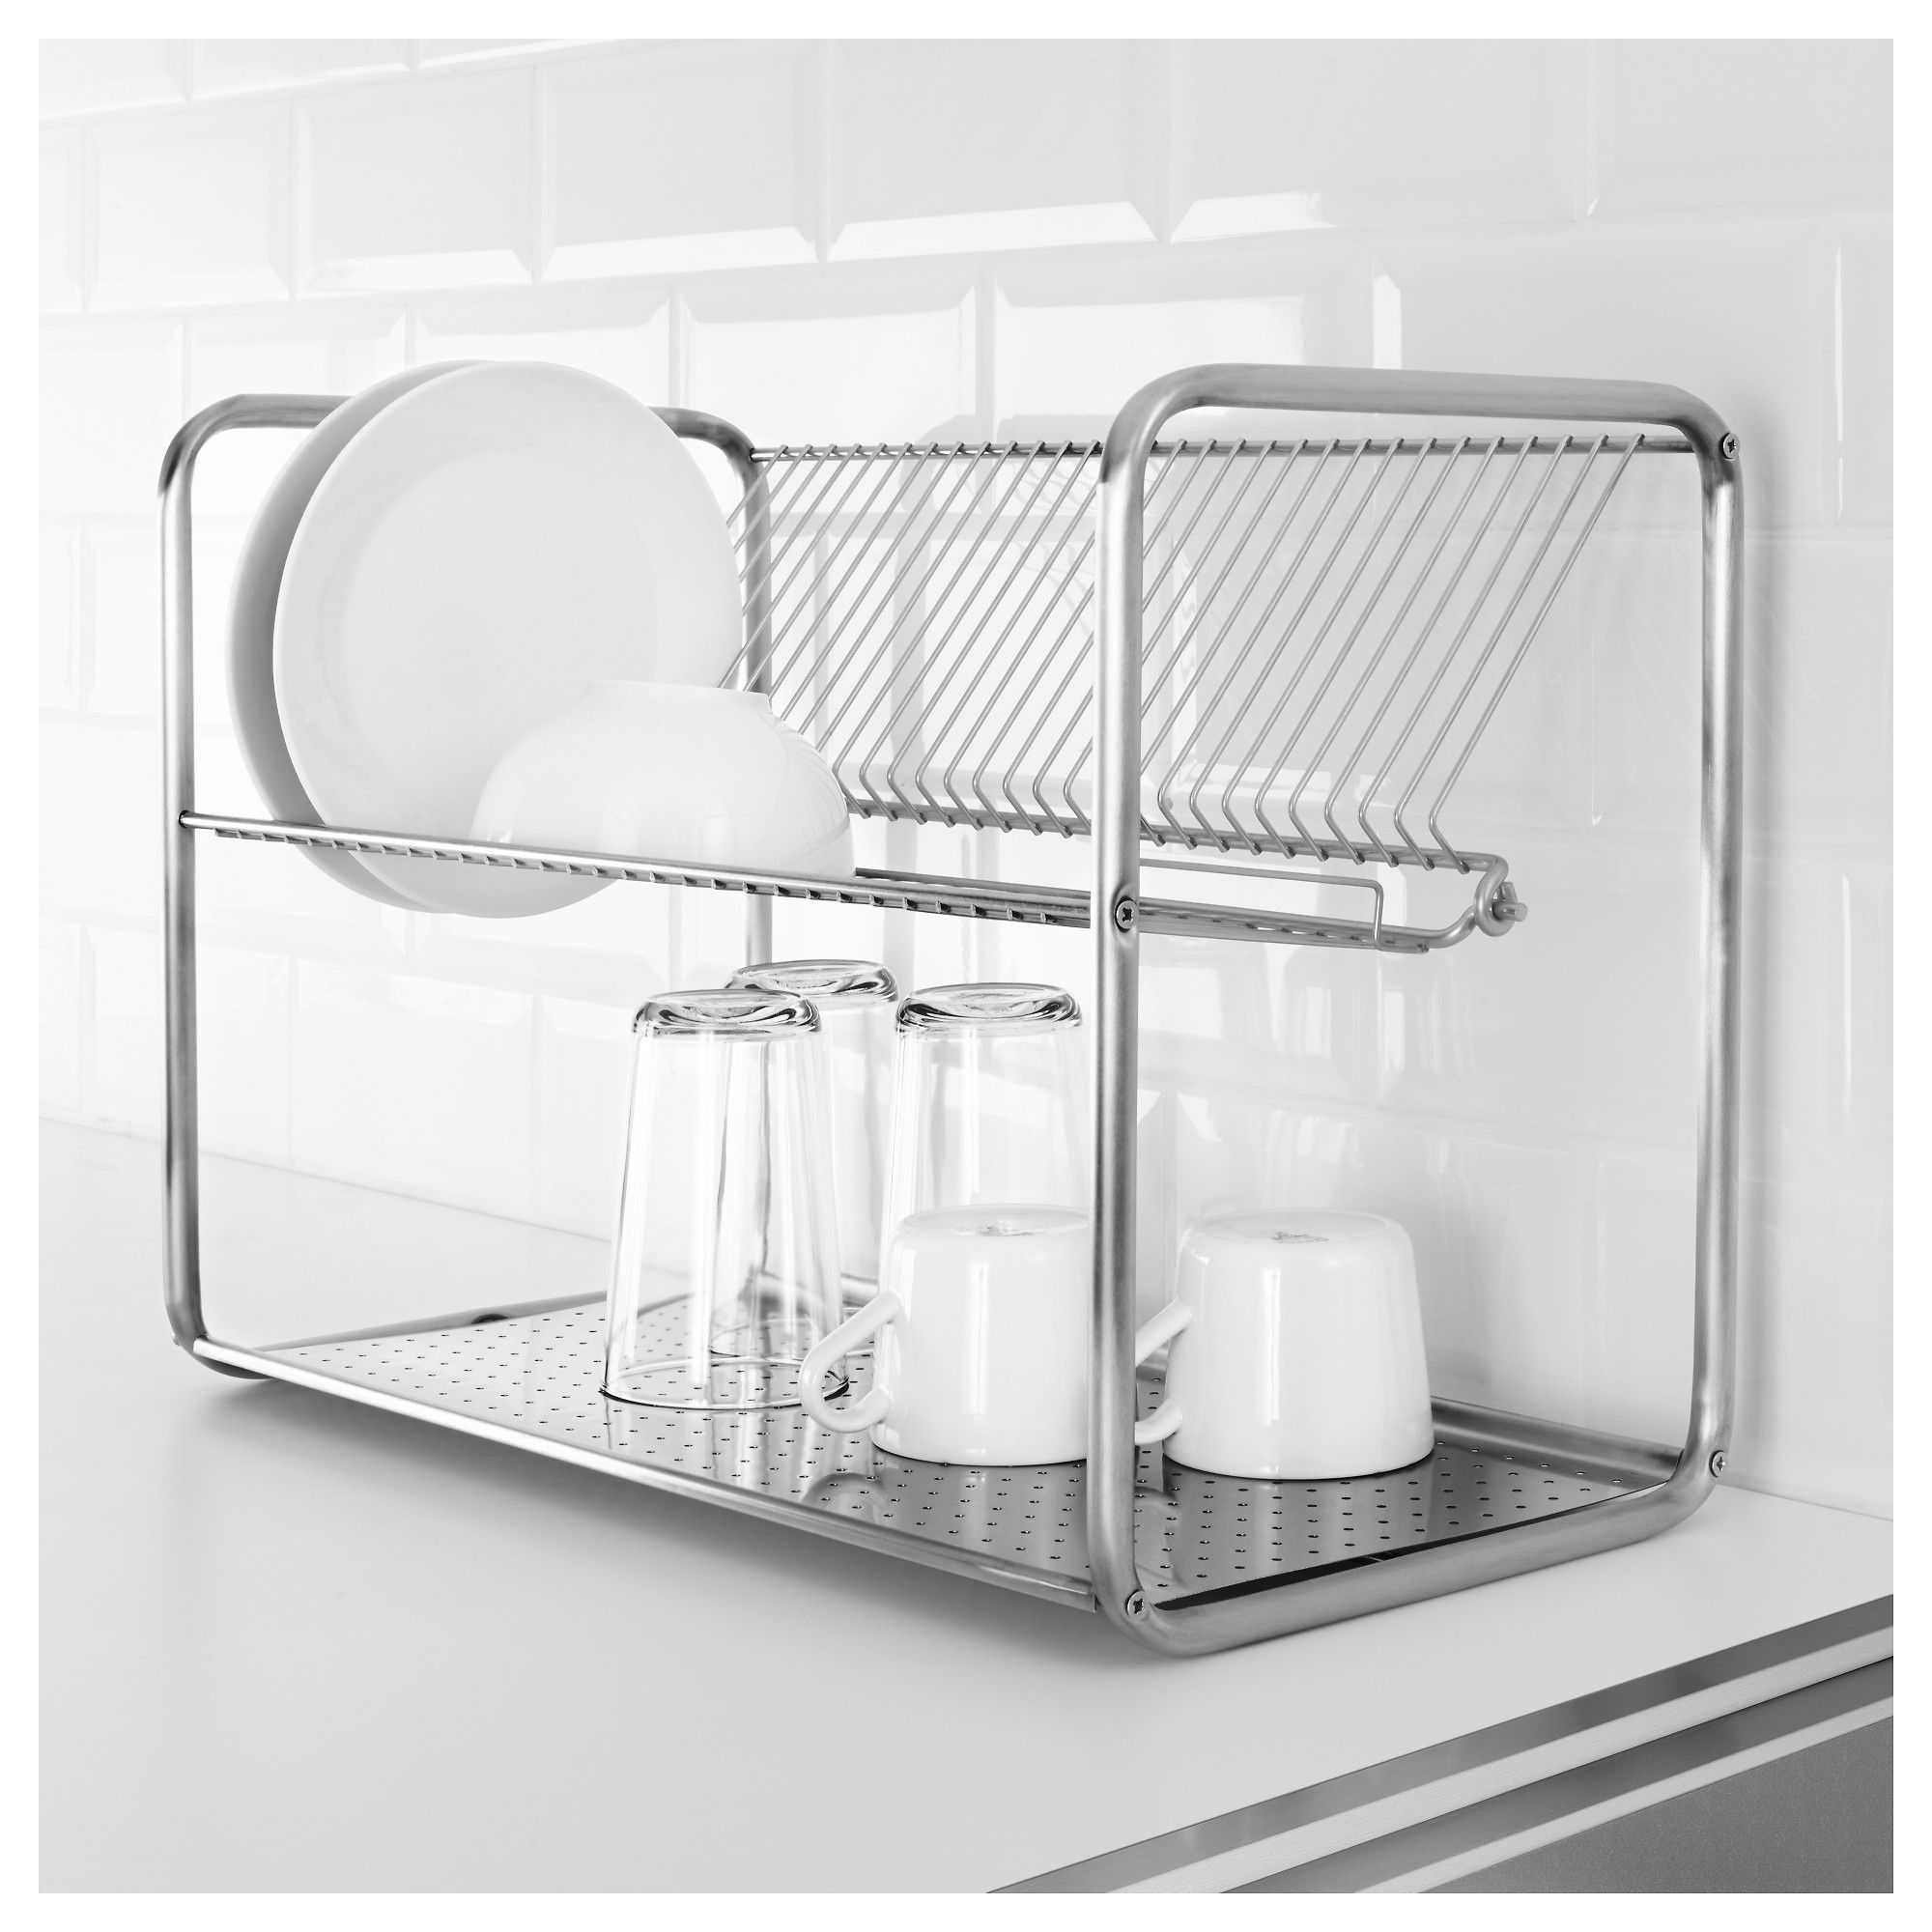 Ordning Dish Drainer Stainless Steel 19 5 8x10 5 8x14 1 8 50x27x36 Cm Dish Drainers Dish Rack Drying Ikea Kitchen Accessories